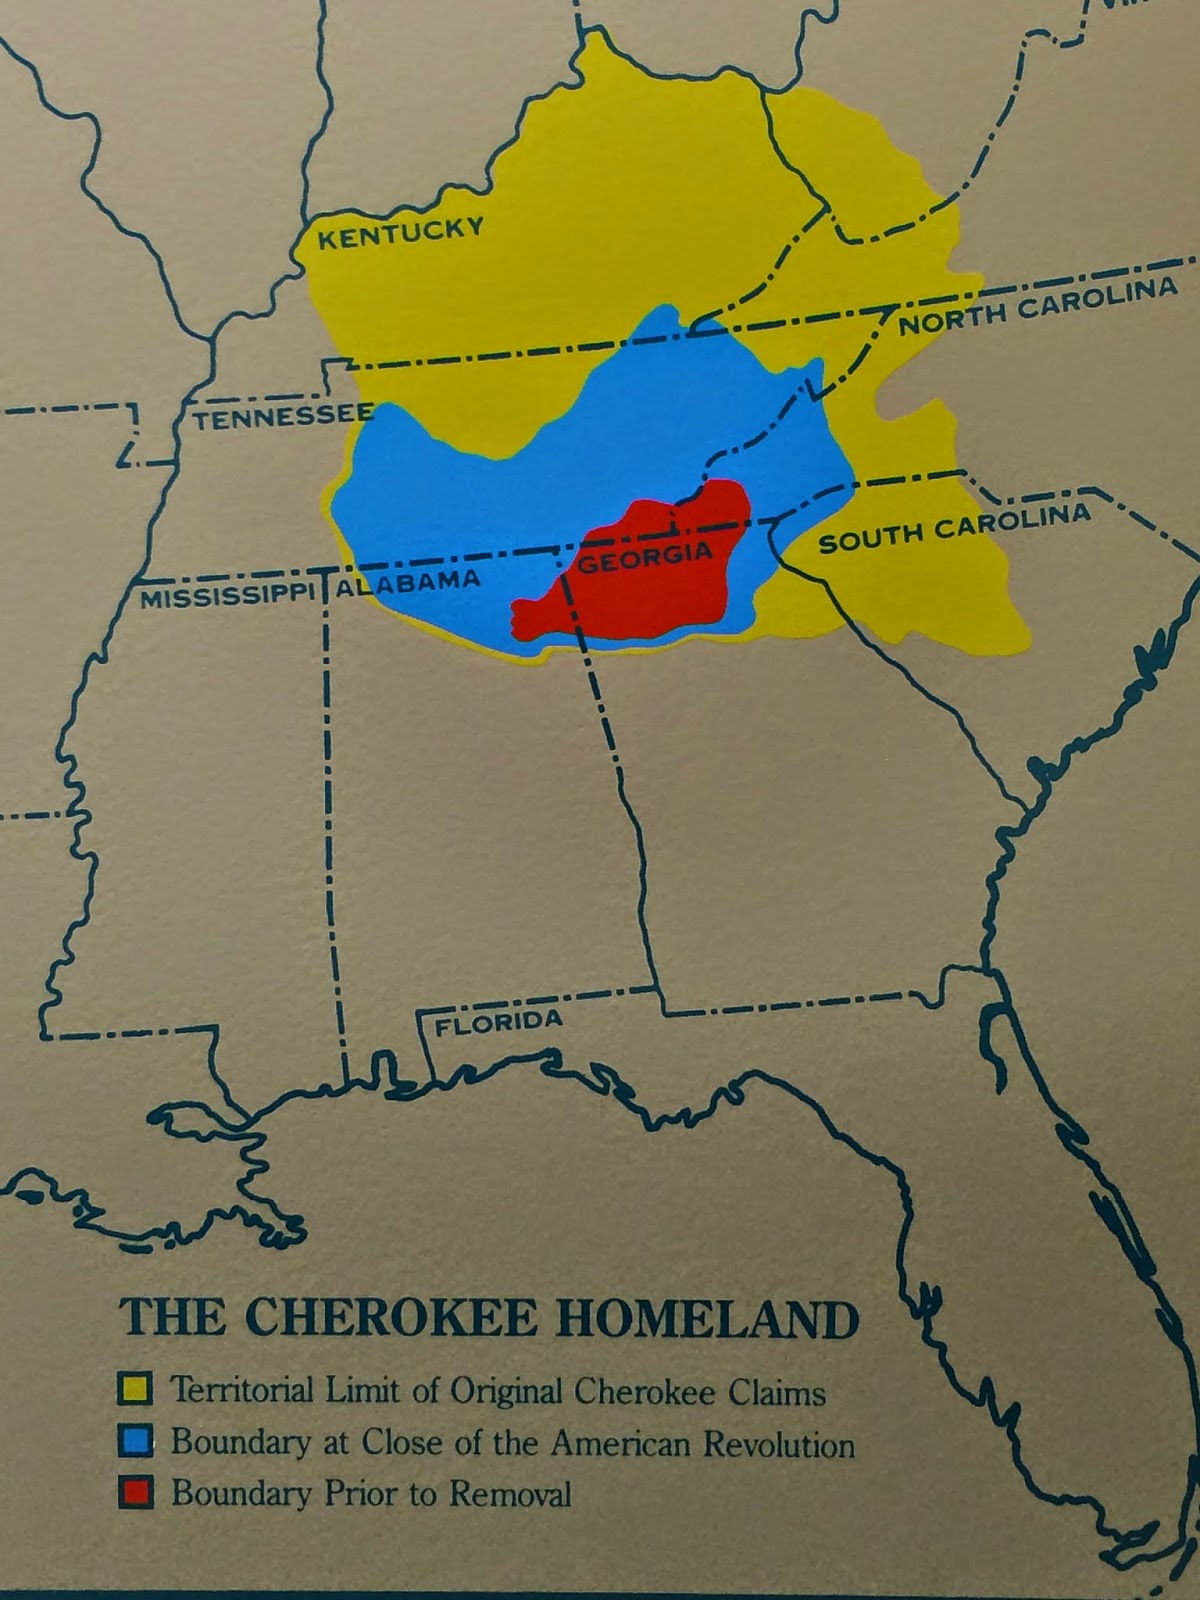 the map above shows the extent of cherokee lands at first contact with europeans in yellow by the time of the american revolution their lands had shrunk